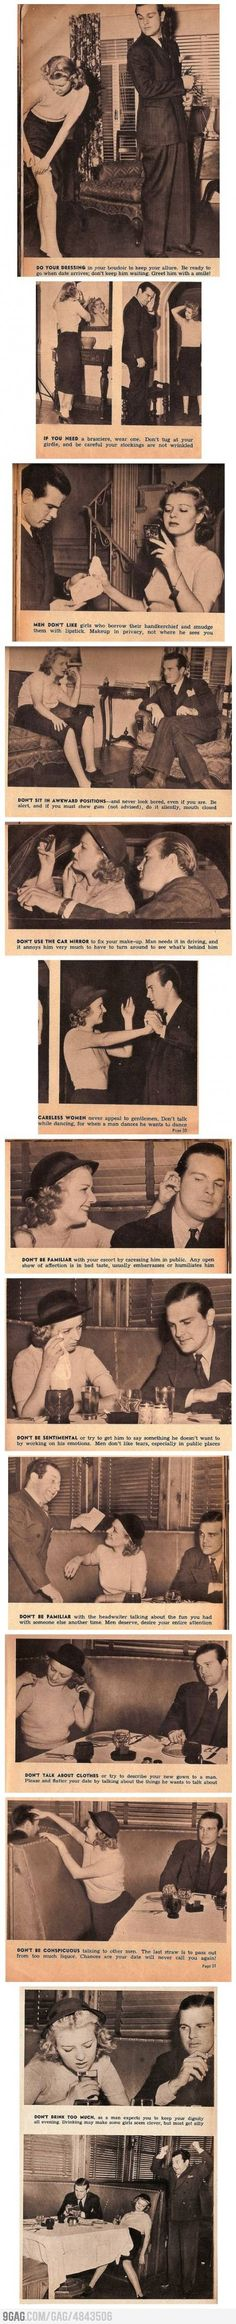 Dating Advice for Women circa 1950 OMG can you imagine?!?!